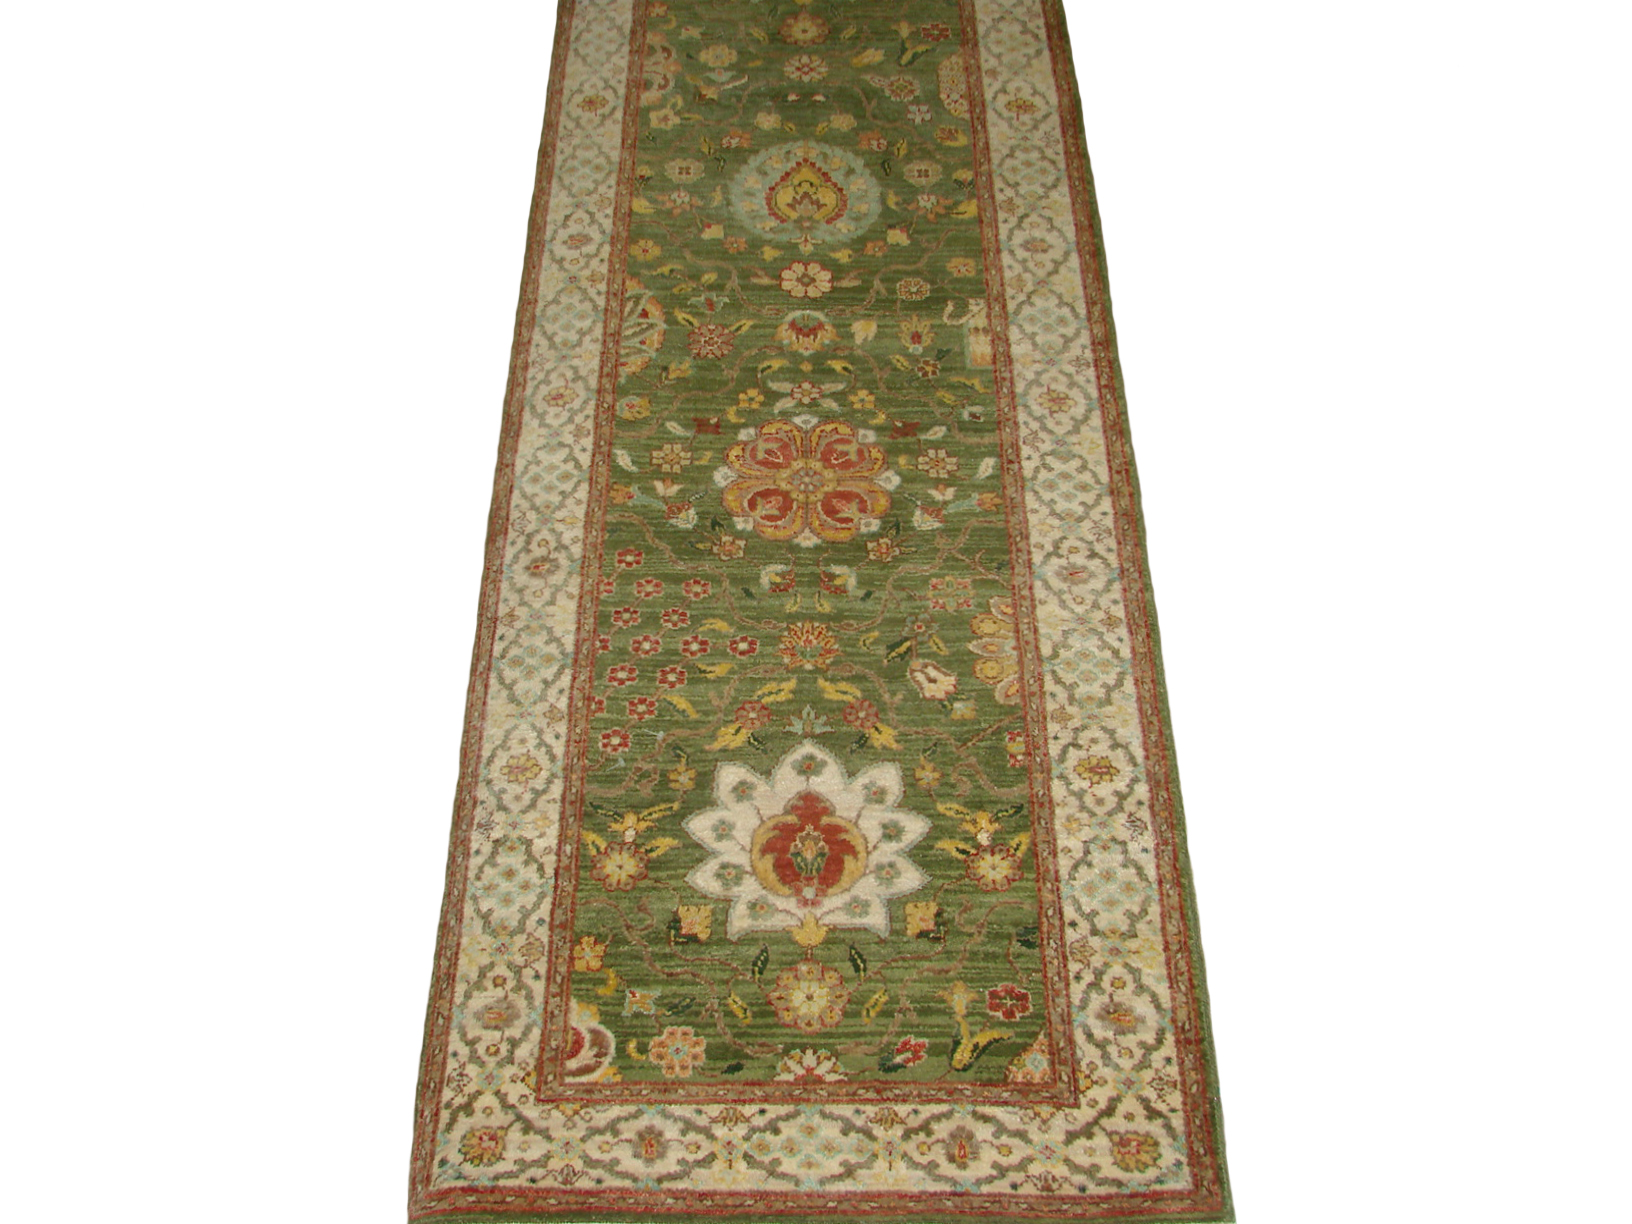 12 Runner Traditional Hand Knotted Wool Area Rug - MR20293